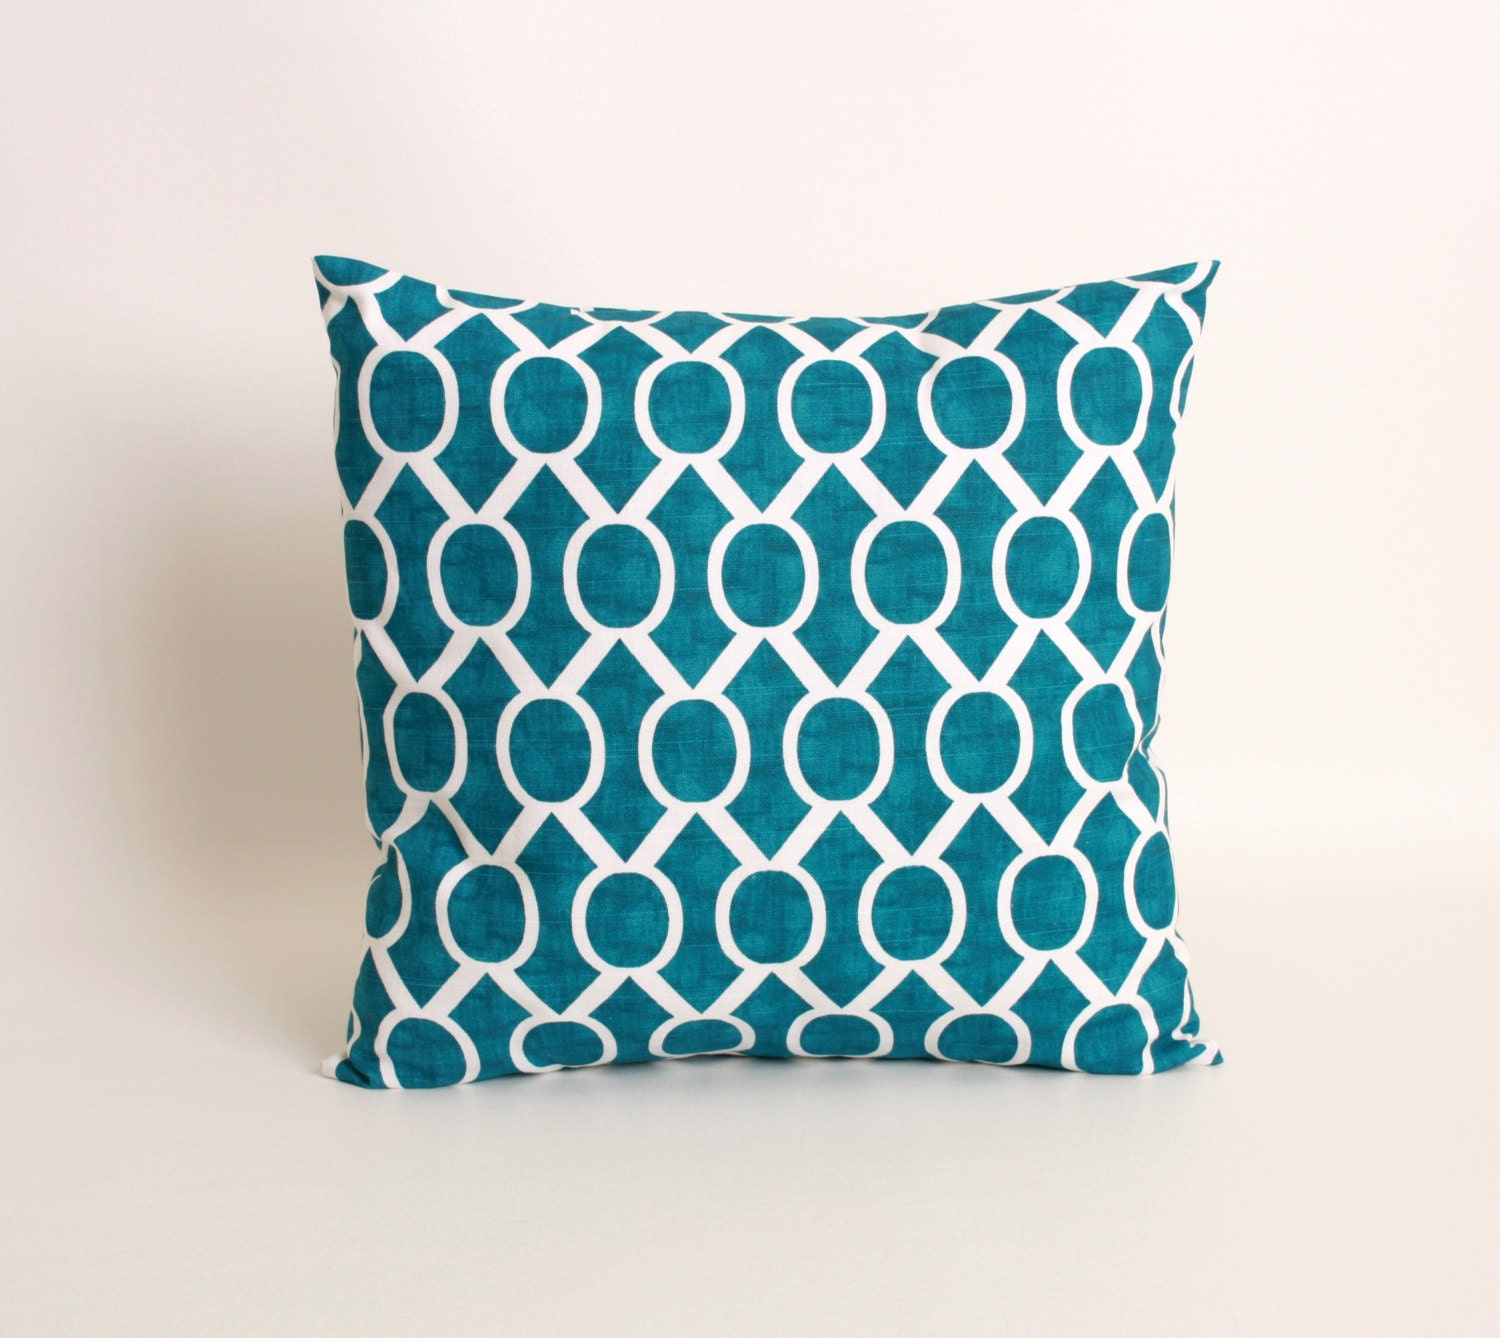 Teal Blue Throw Pillow : Teal Throw Pillow Cover Teal Blue Cushion by DimensionsHomeDecor